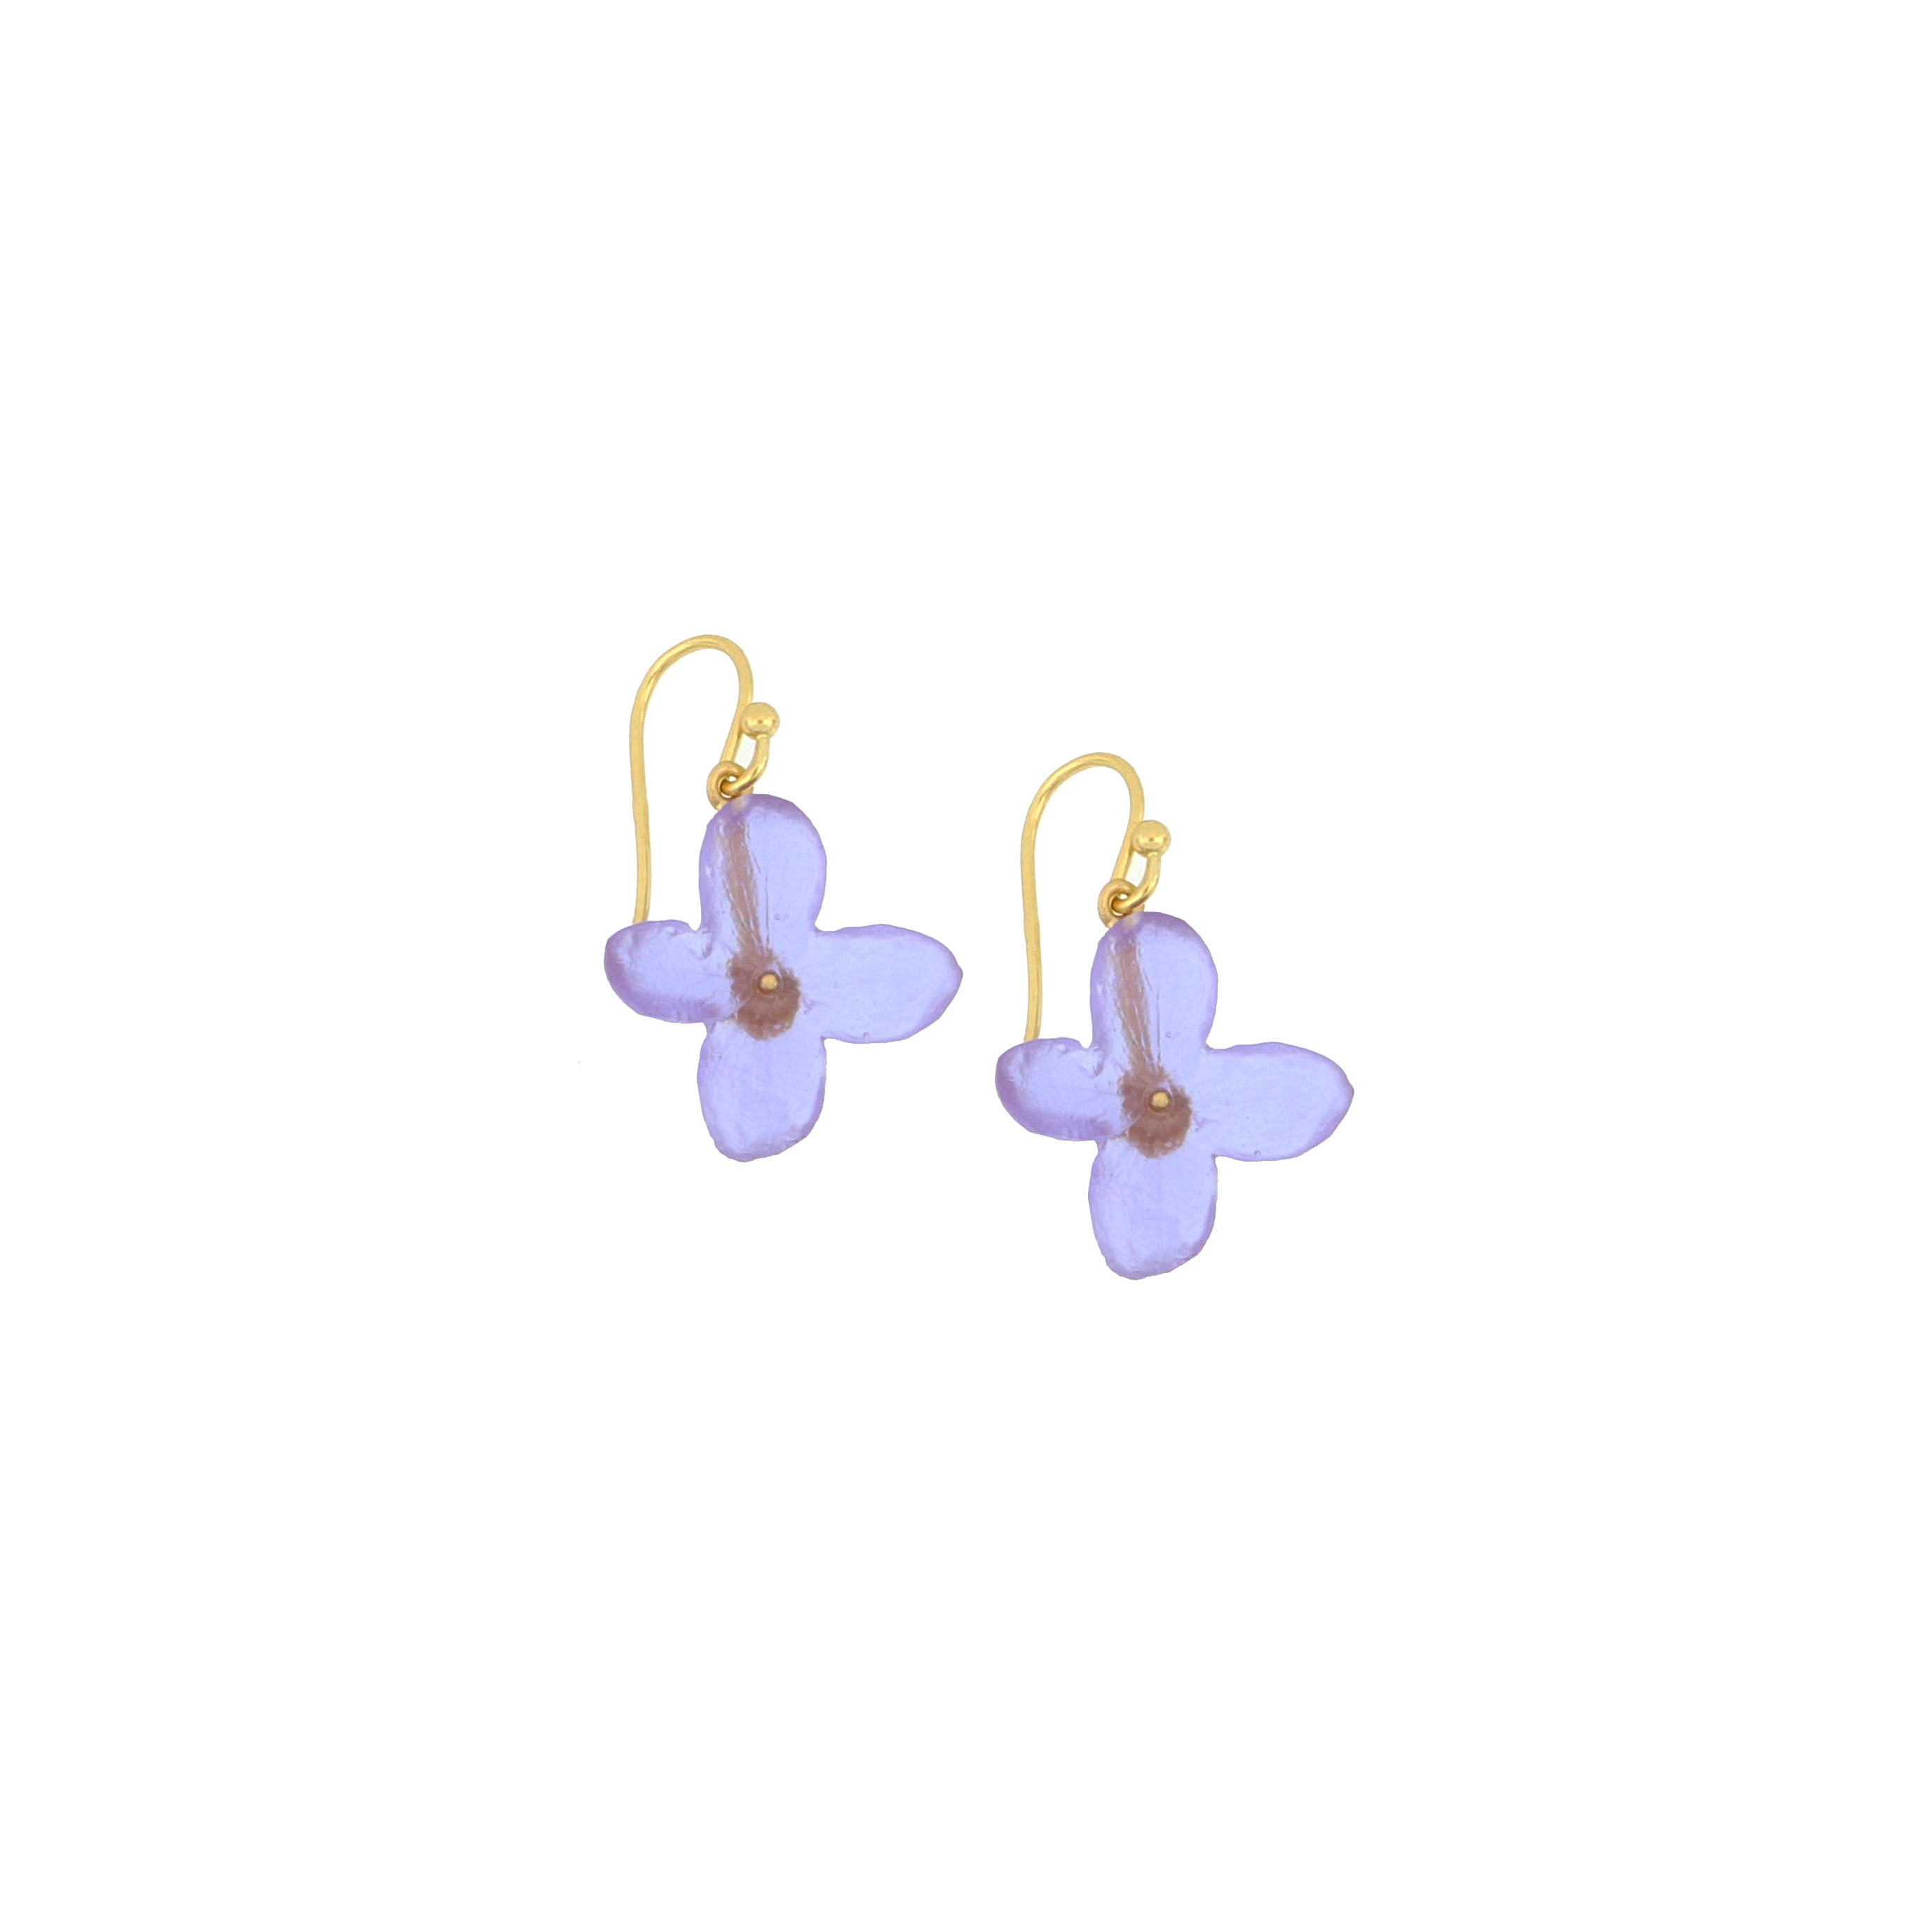 Hydrangea Wire Earrings - Lavender